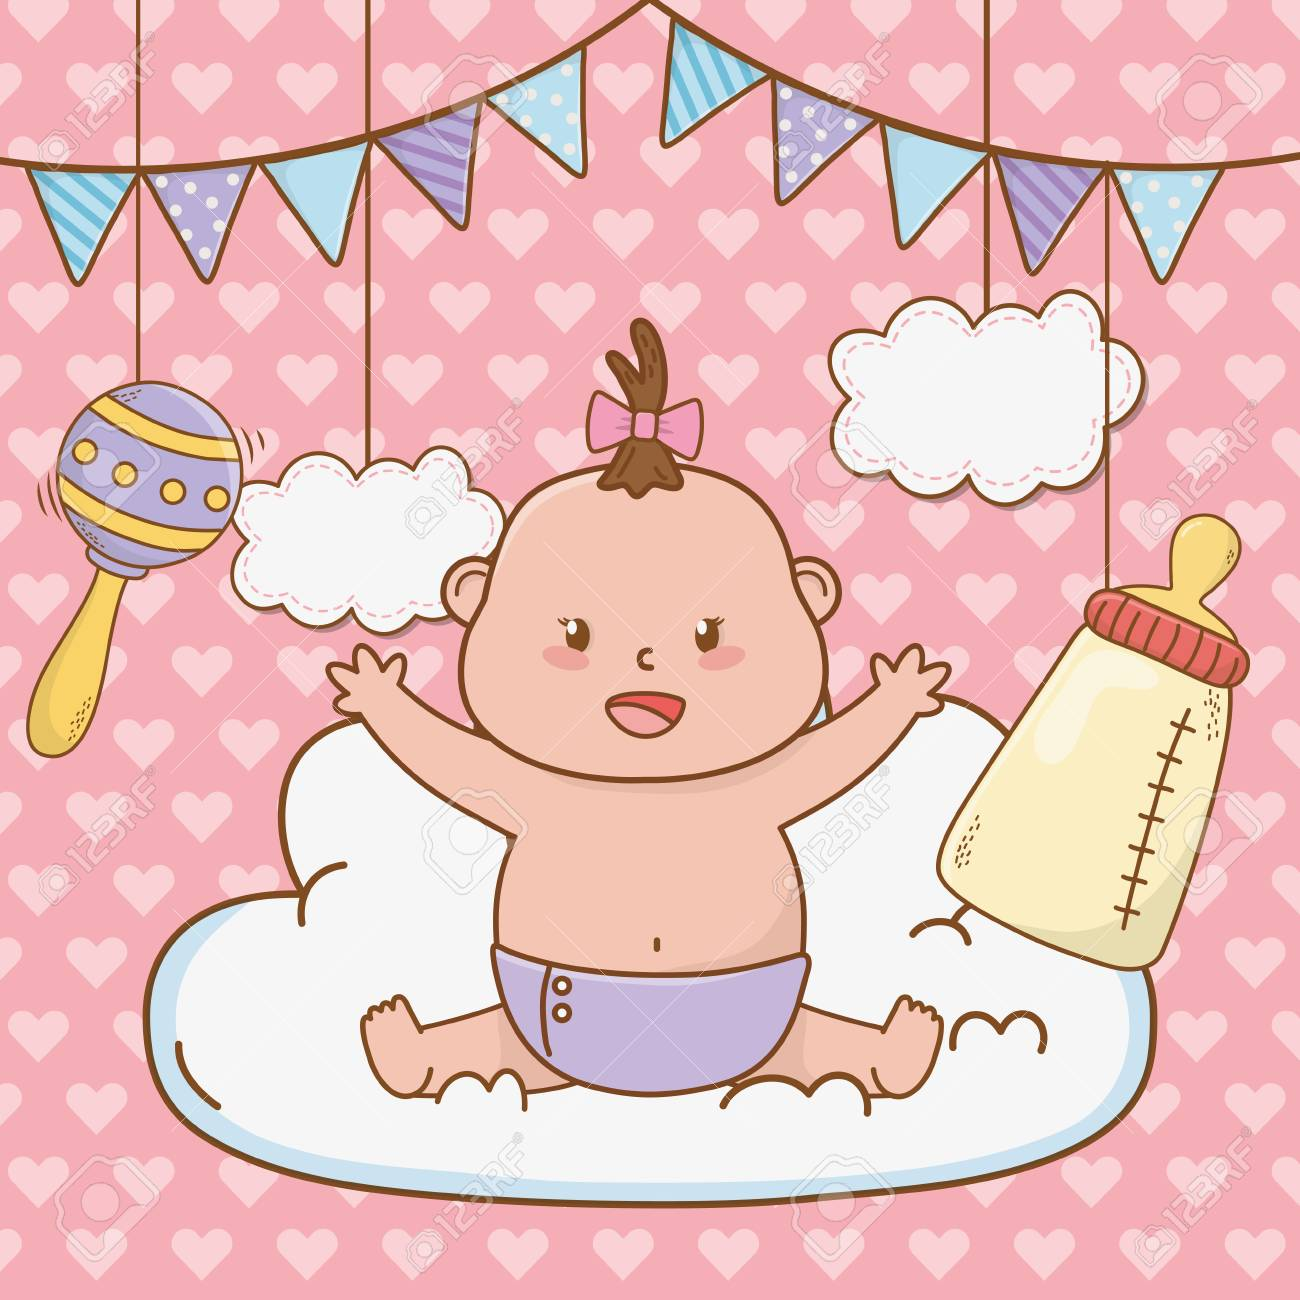 cute baby shower little baby with elements cartoon vector illustration graphic design - 123422487